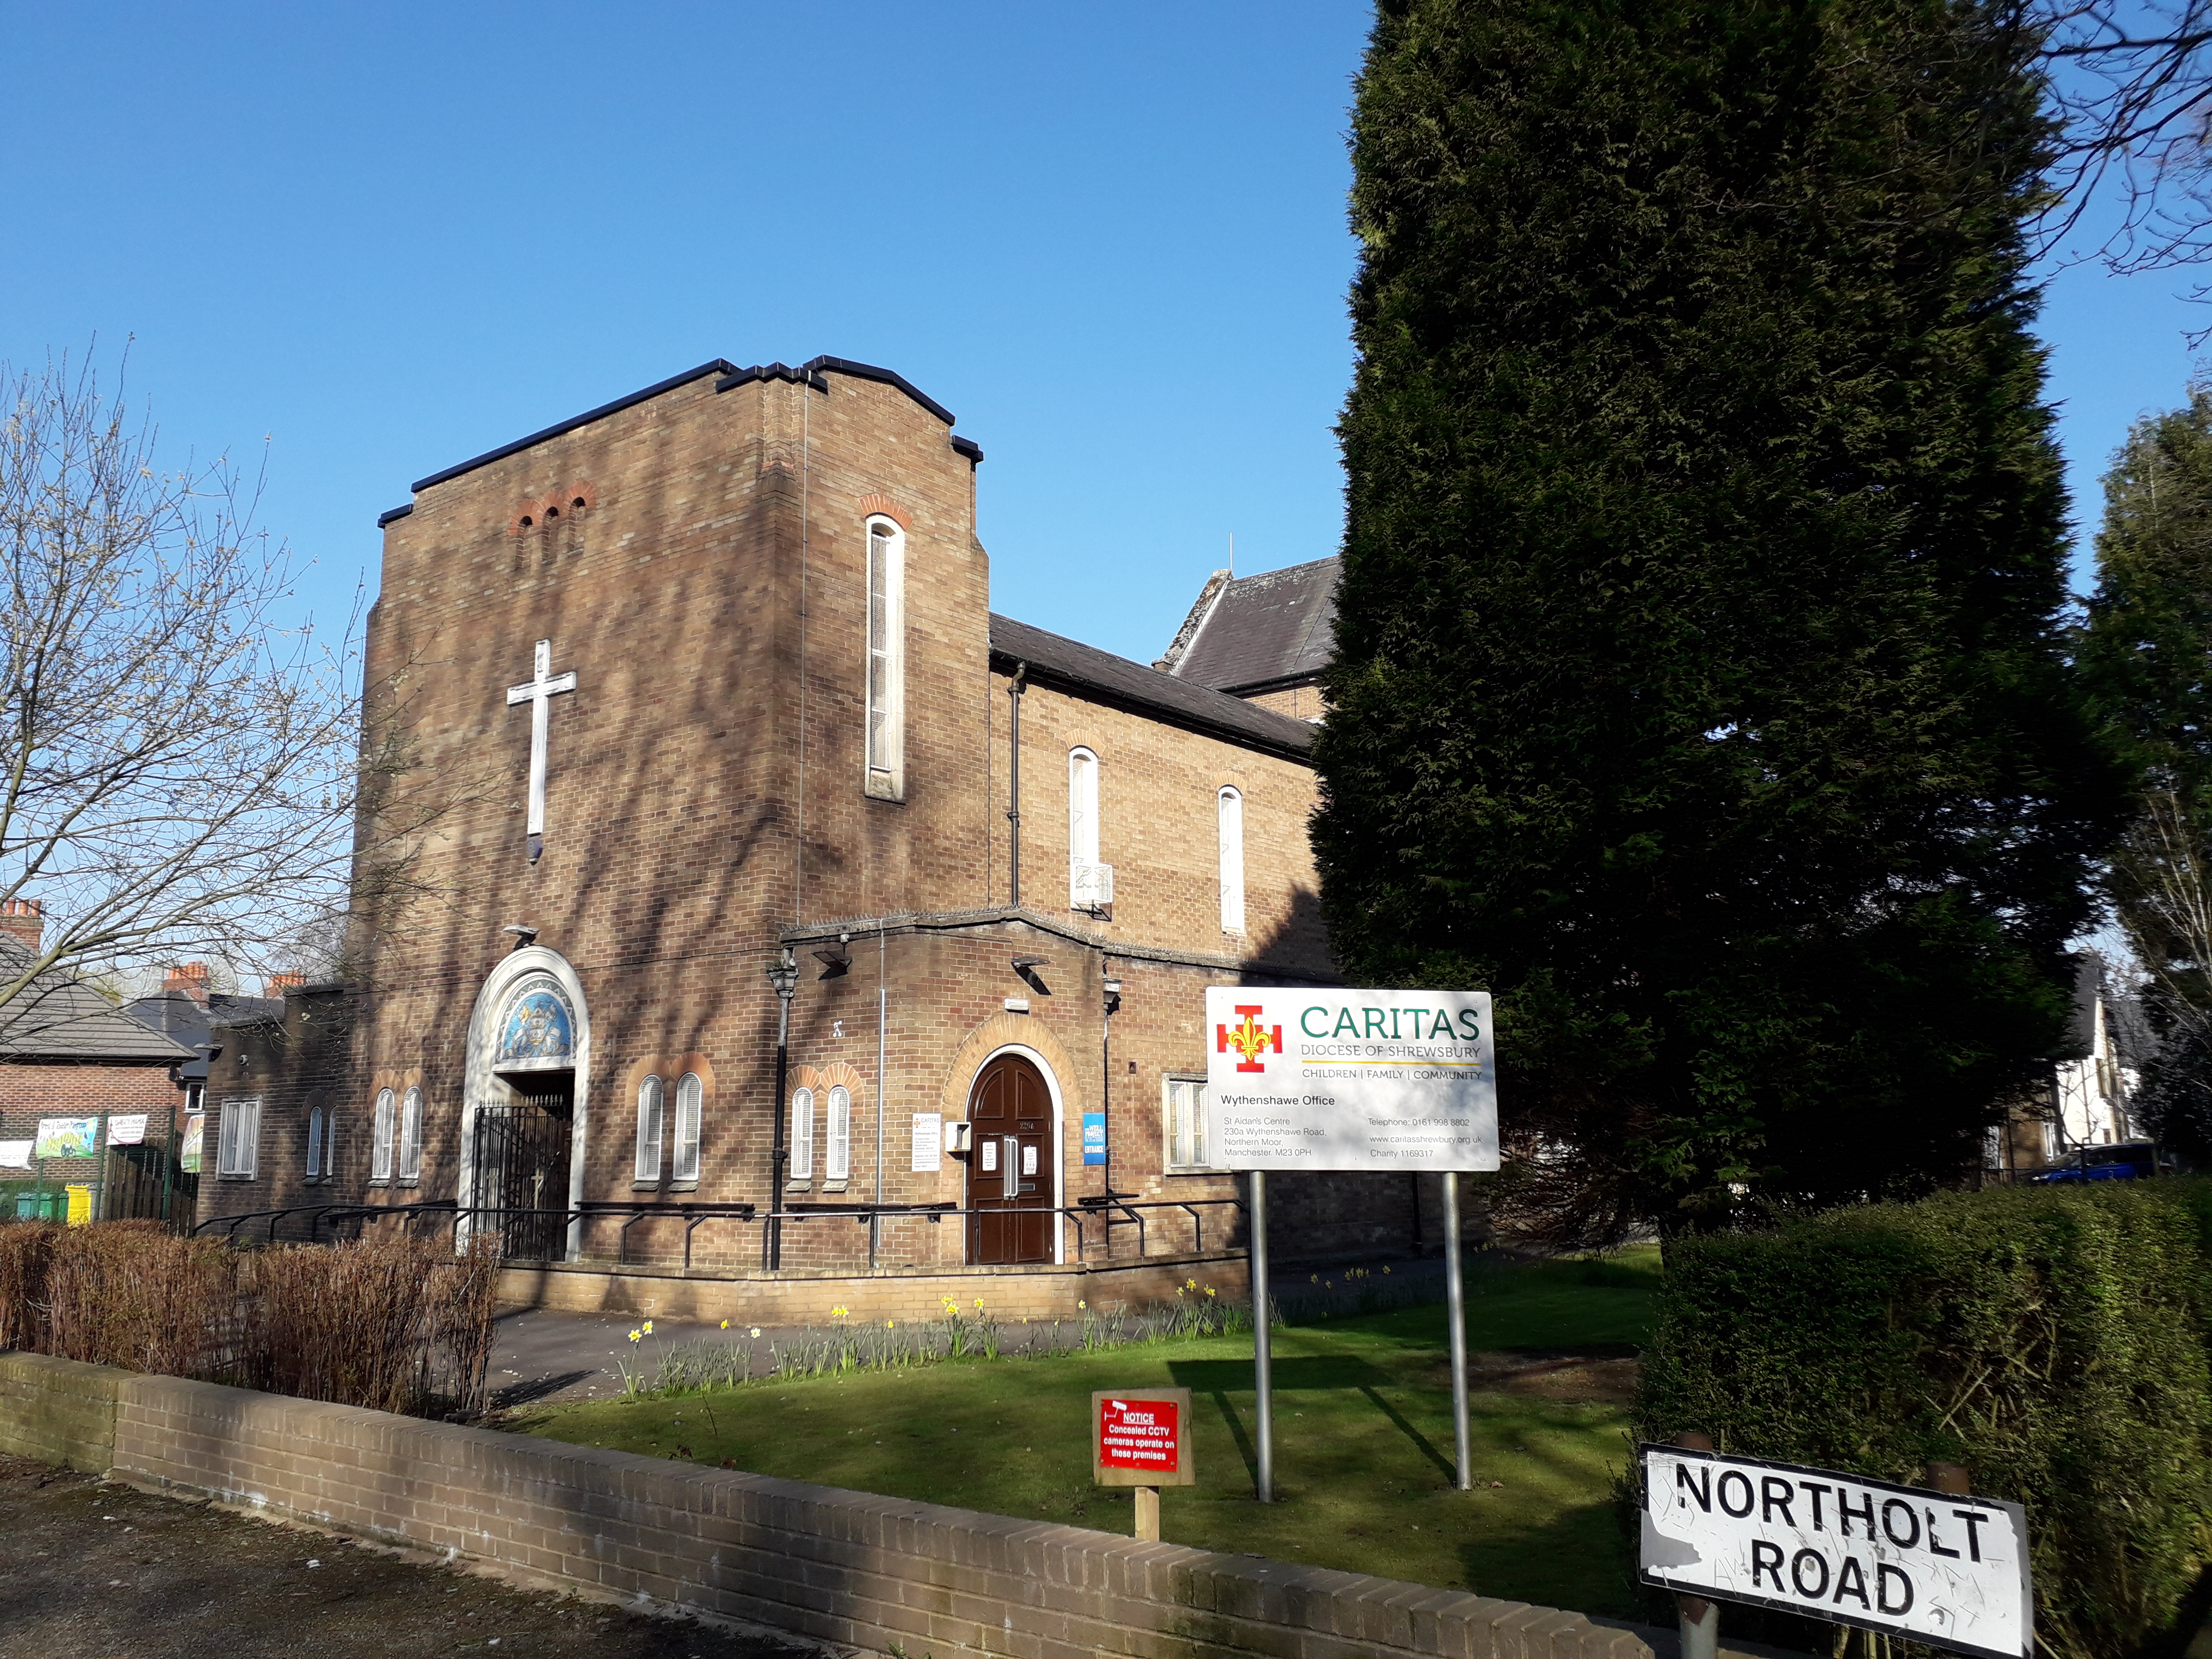 St Aidan's Church from the outside